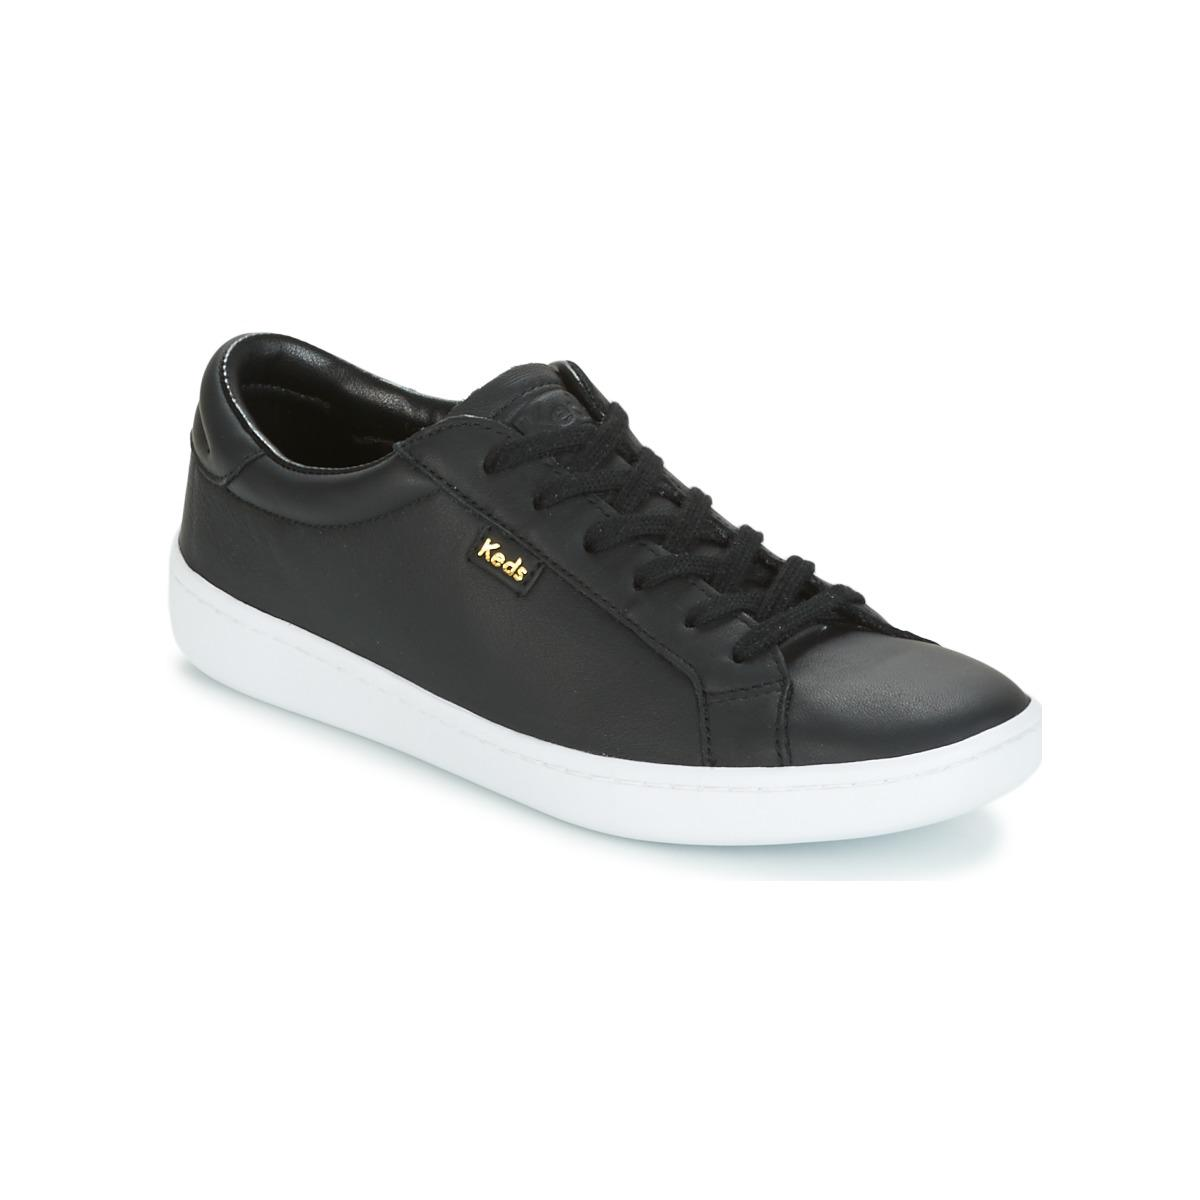 8dd9b12da9b Keds Ace Core Leather Women s Shoes (trainers) In Black in Black for ...